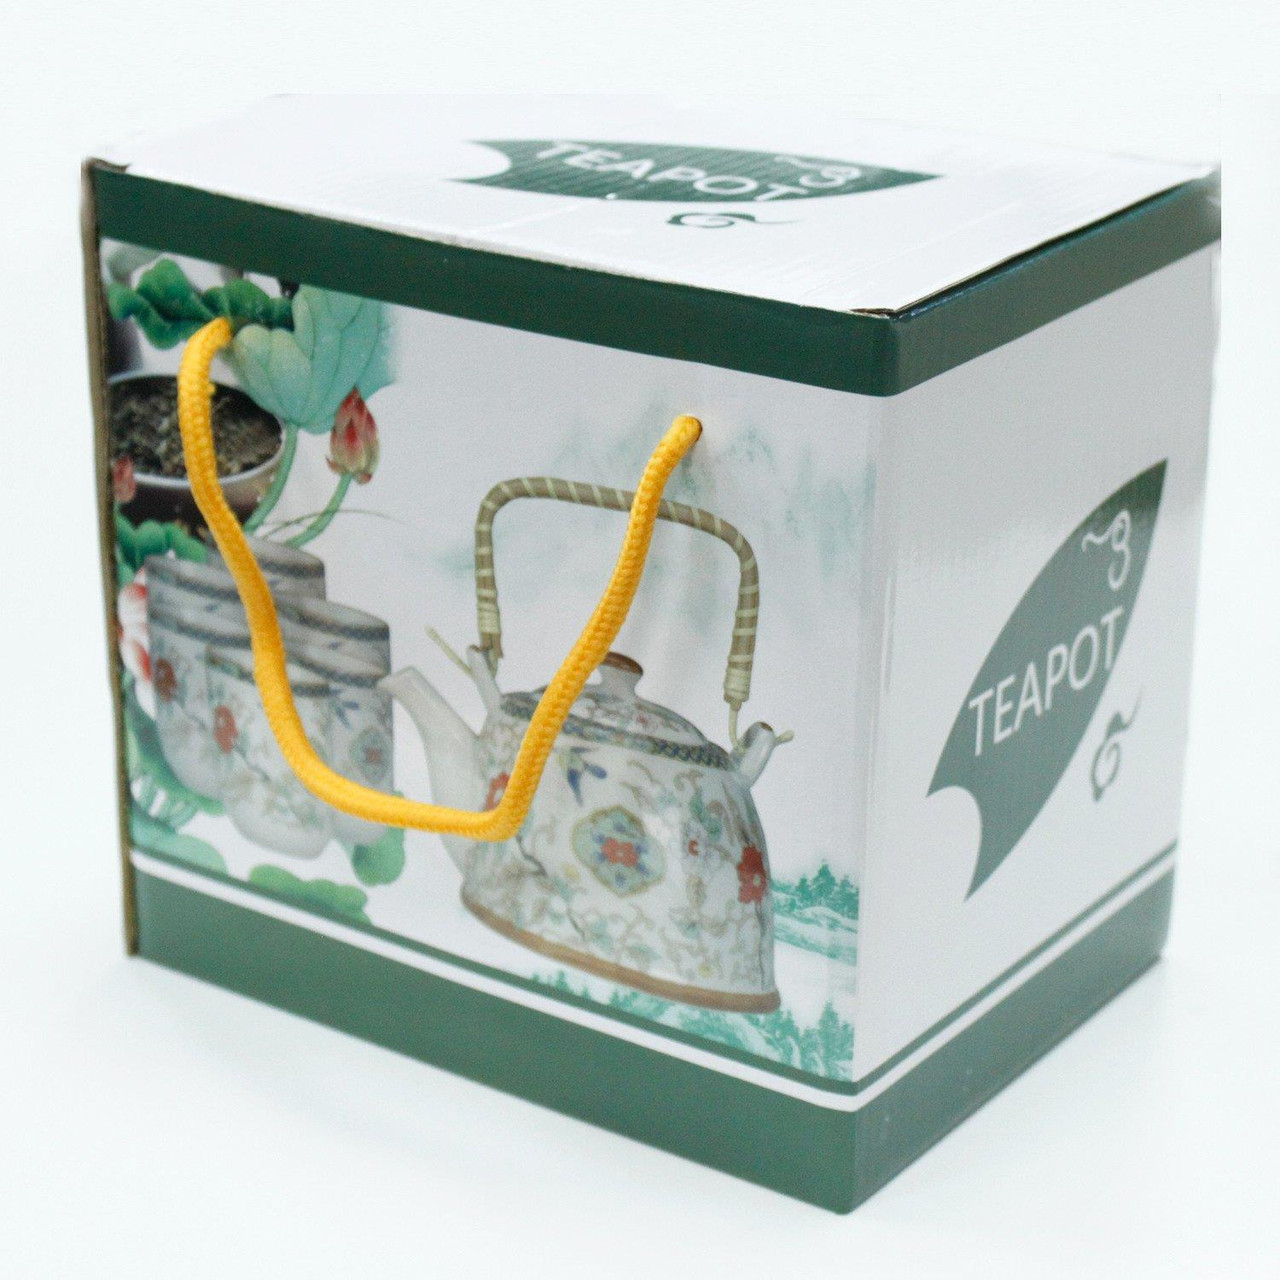 Chinese Herbal Tea Set - Chinese Fans - 6 Cups and Infuser - Boxed